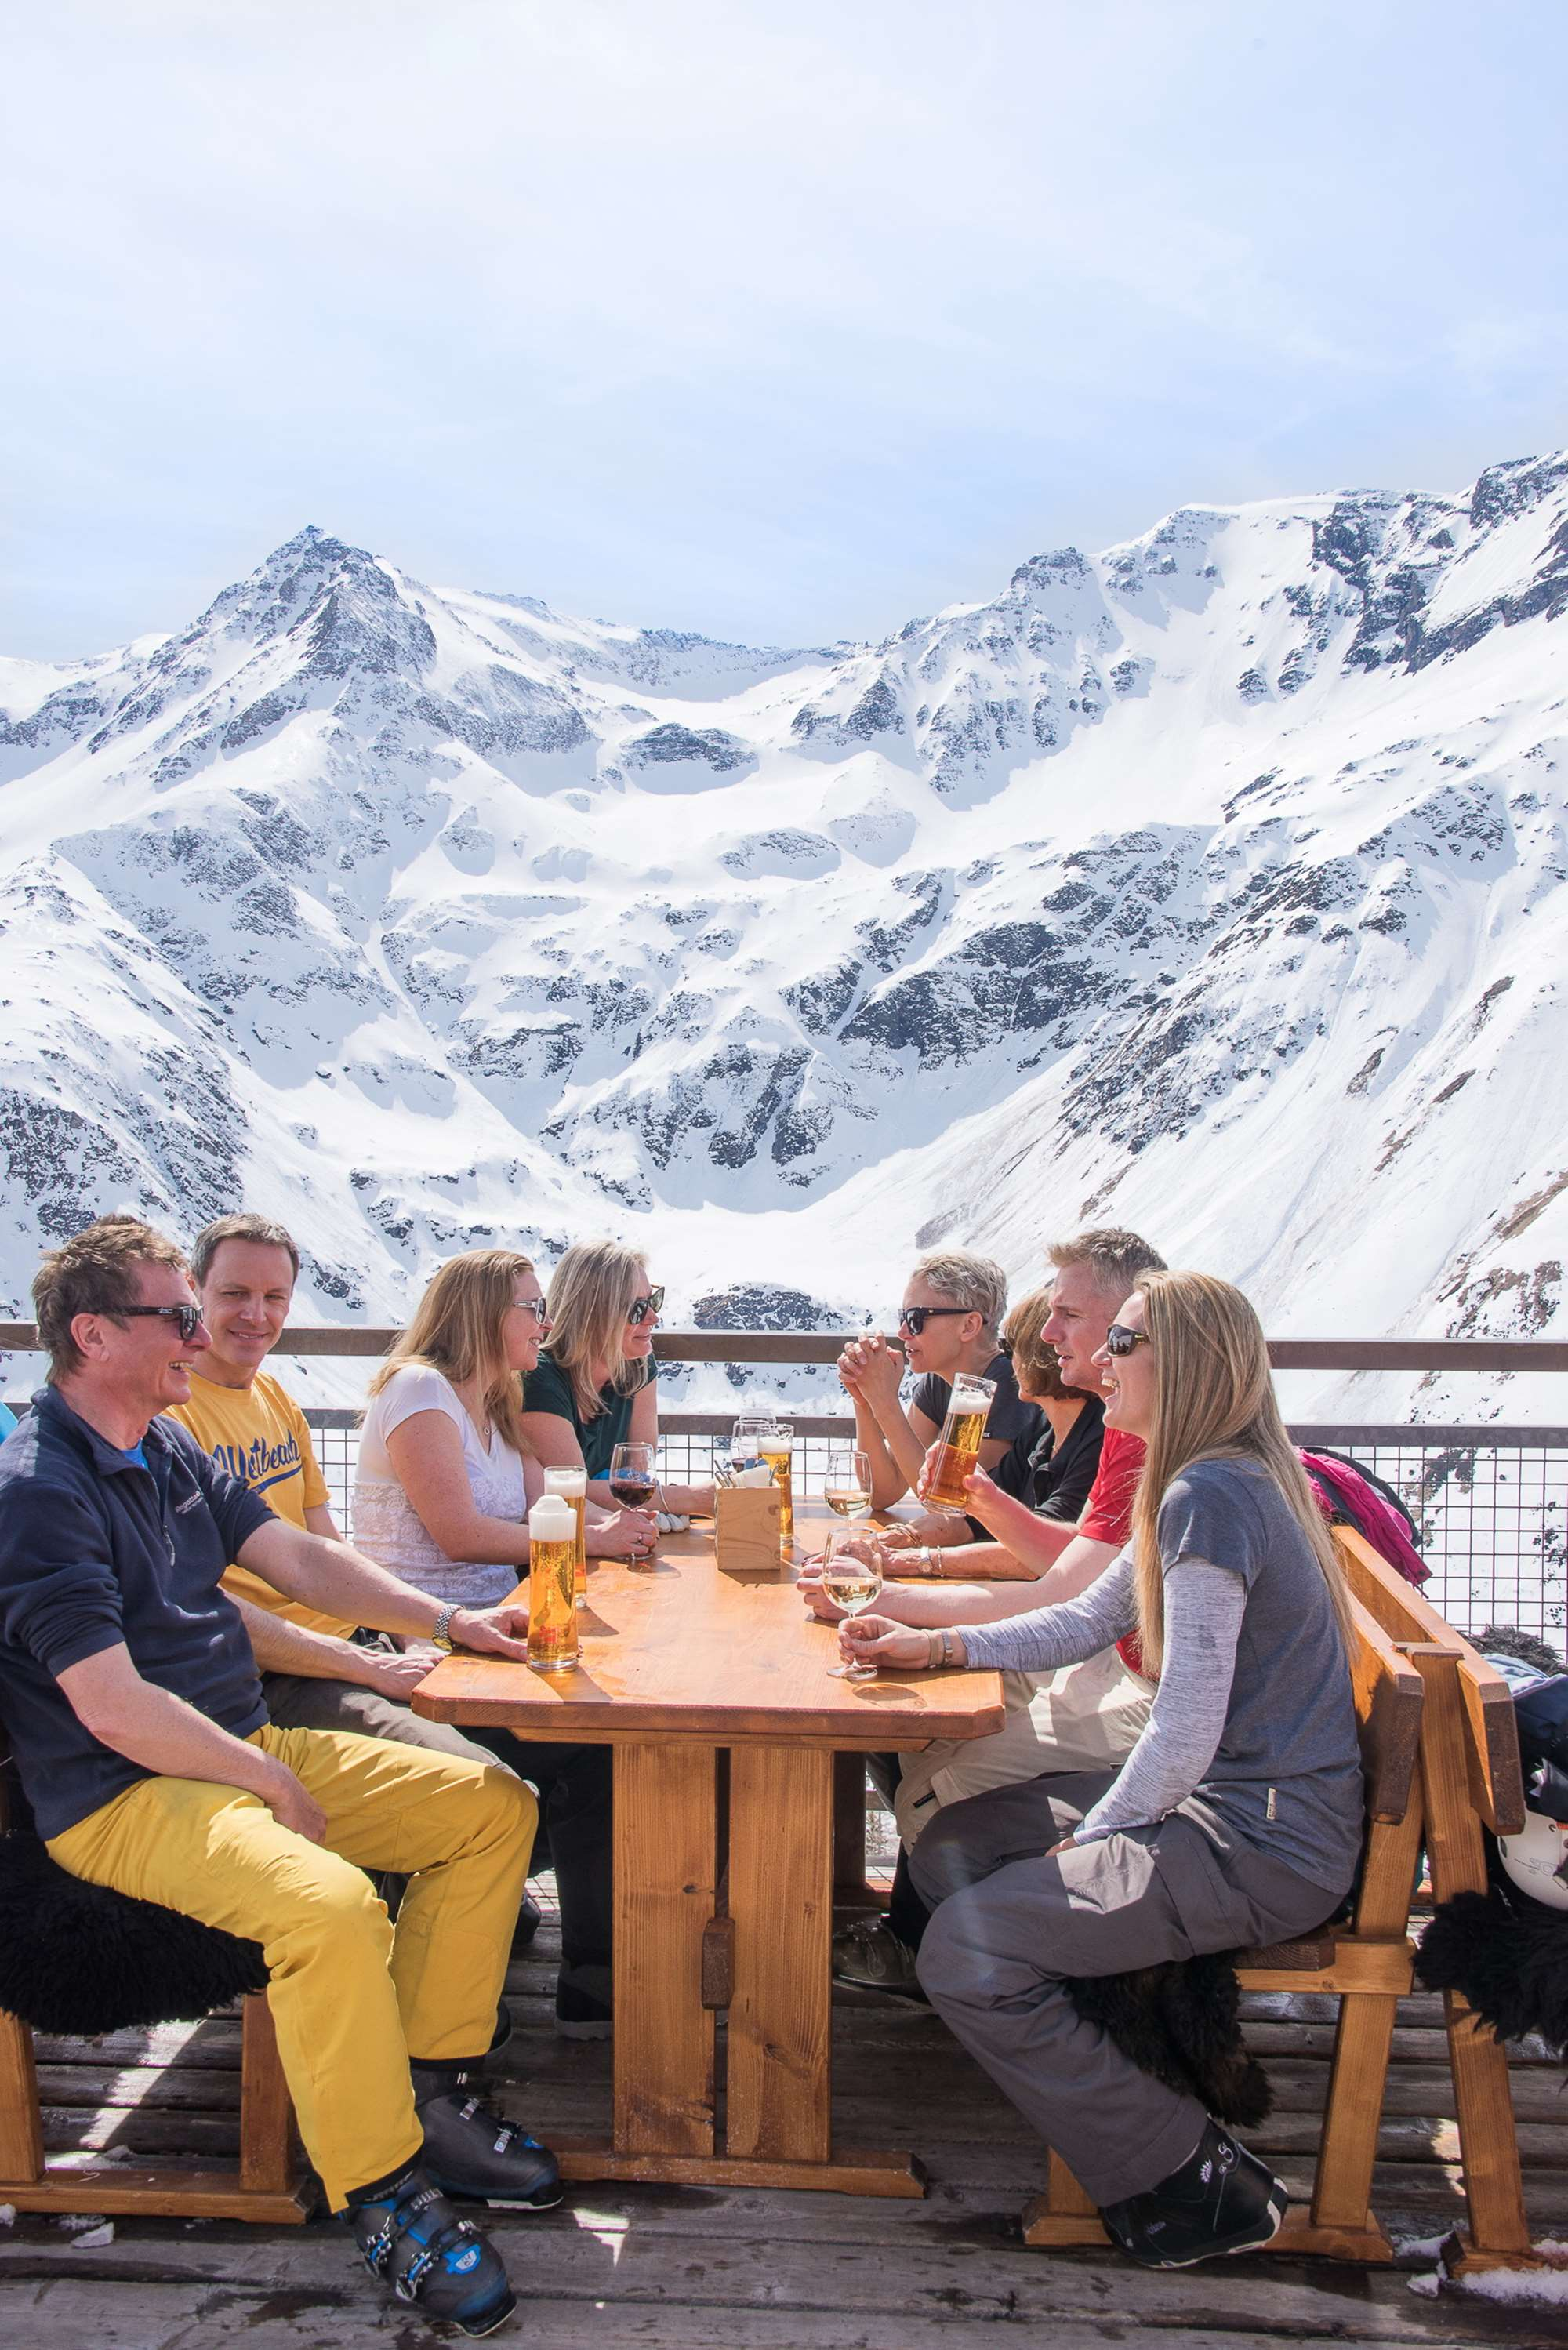 Drinks on the mountain at Sportgastein